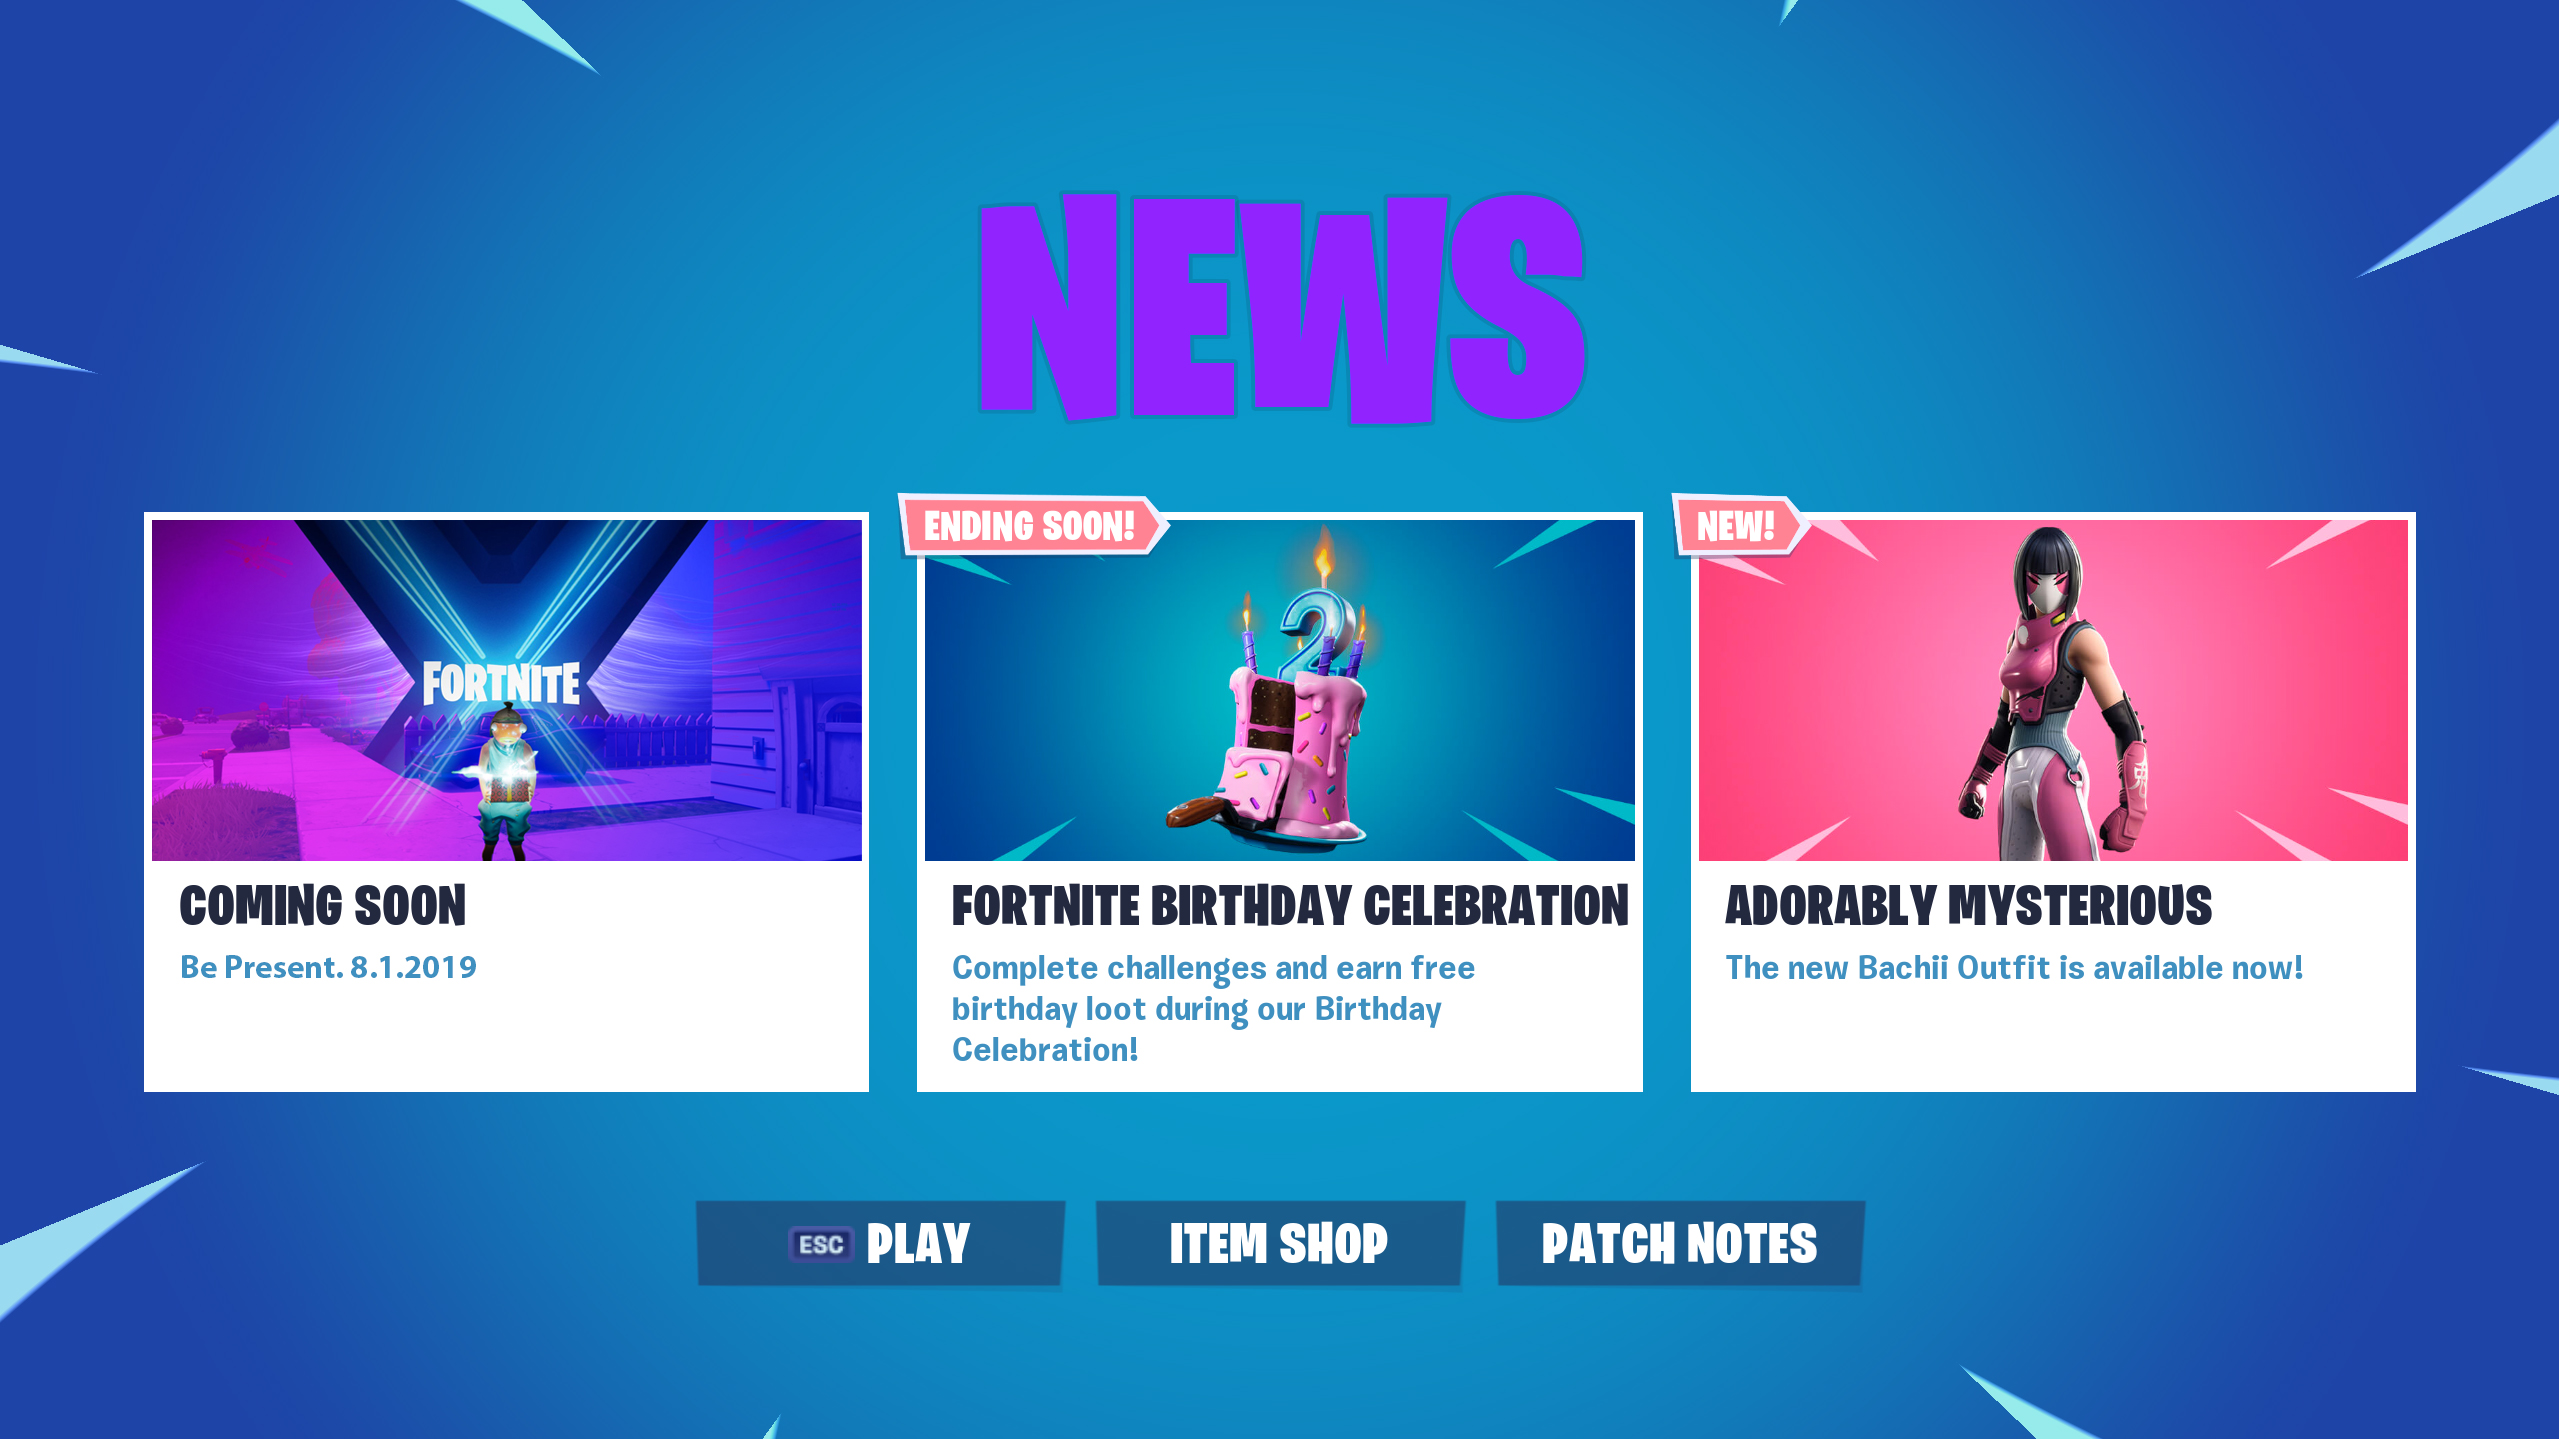 News Glitches The Third Teaser A Day Early R Fortnitebr Fortnite Know Your Meme .fortnitebr #fortnitestreamer #season9 #fortnitegameplay #twitch #twitchfortnite #fortnitewins fortnitewin #fortnitely #fortnitebr #fortnitememe #fortniteseason9 #fortniteps4 #fortnitelovers. news glitches the third teaser a day